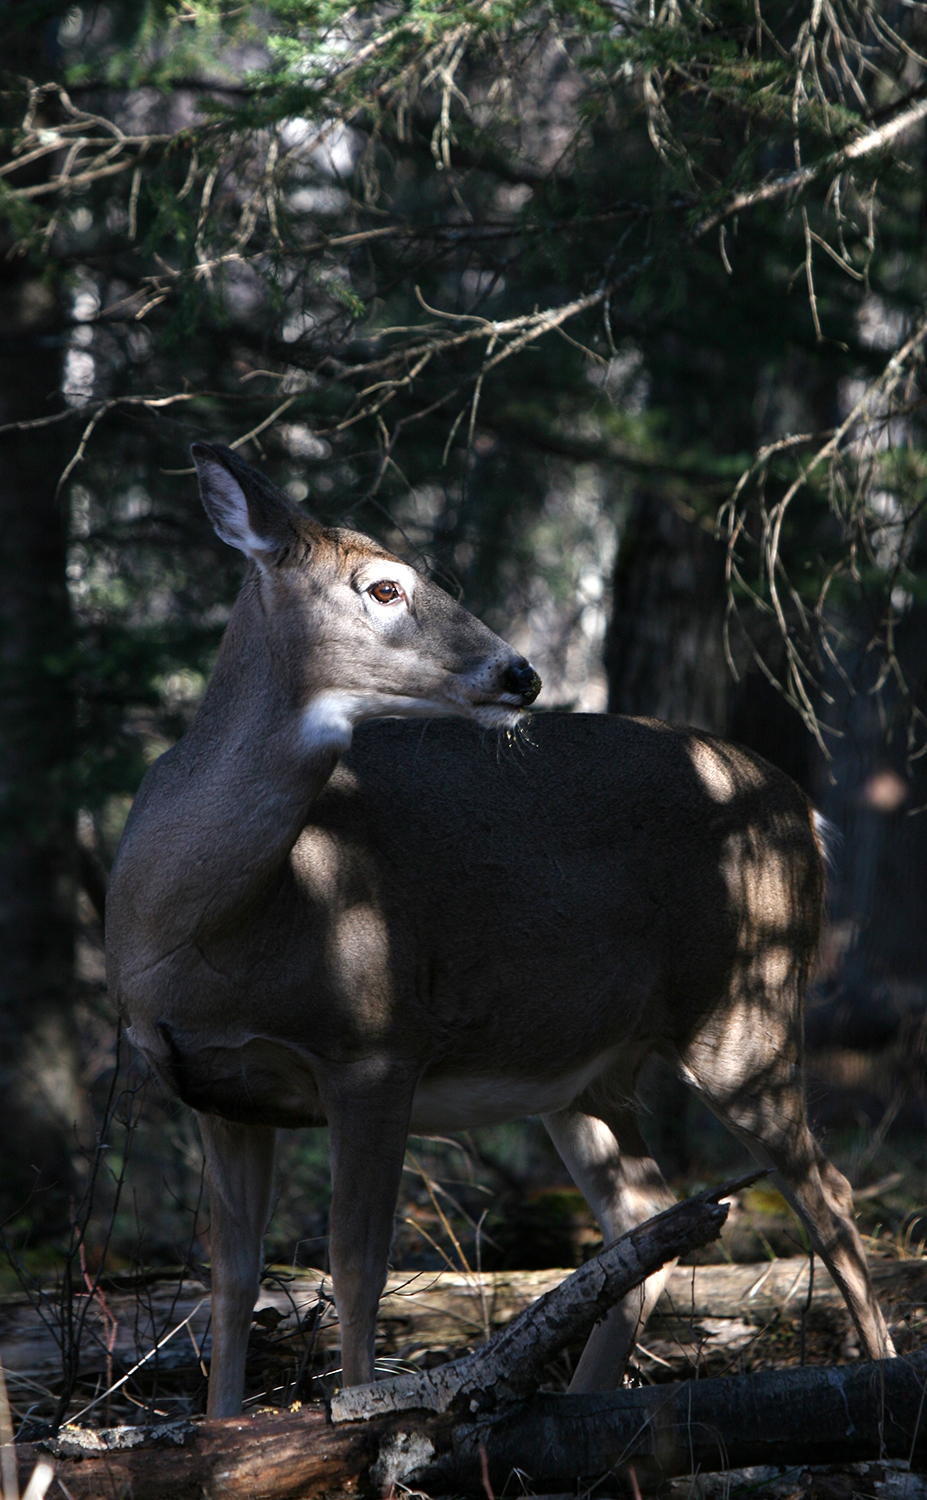 Is your deer population where you want it or has your state been putting too much pressure on